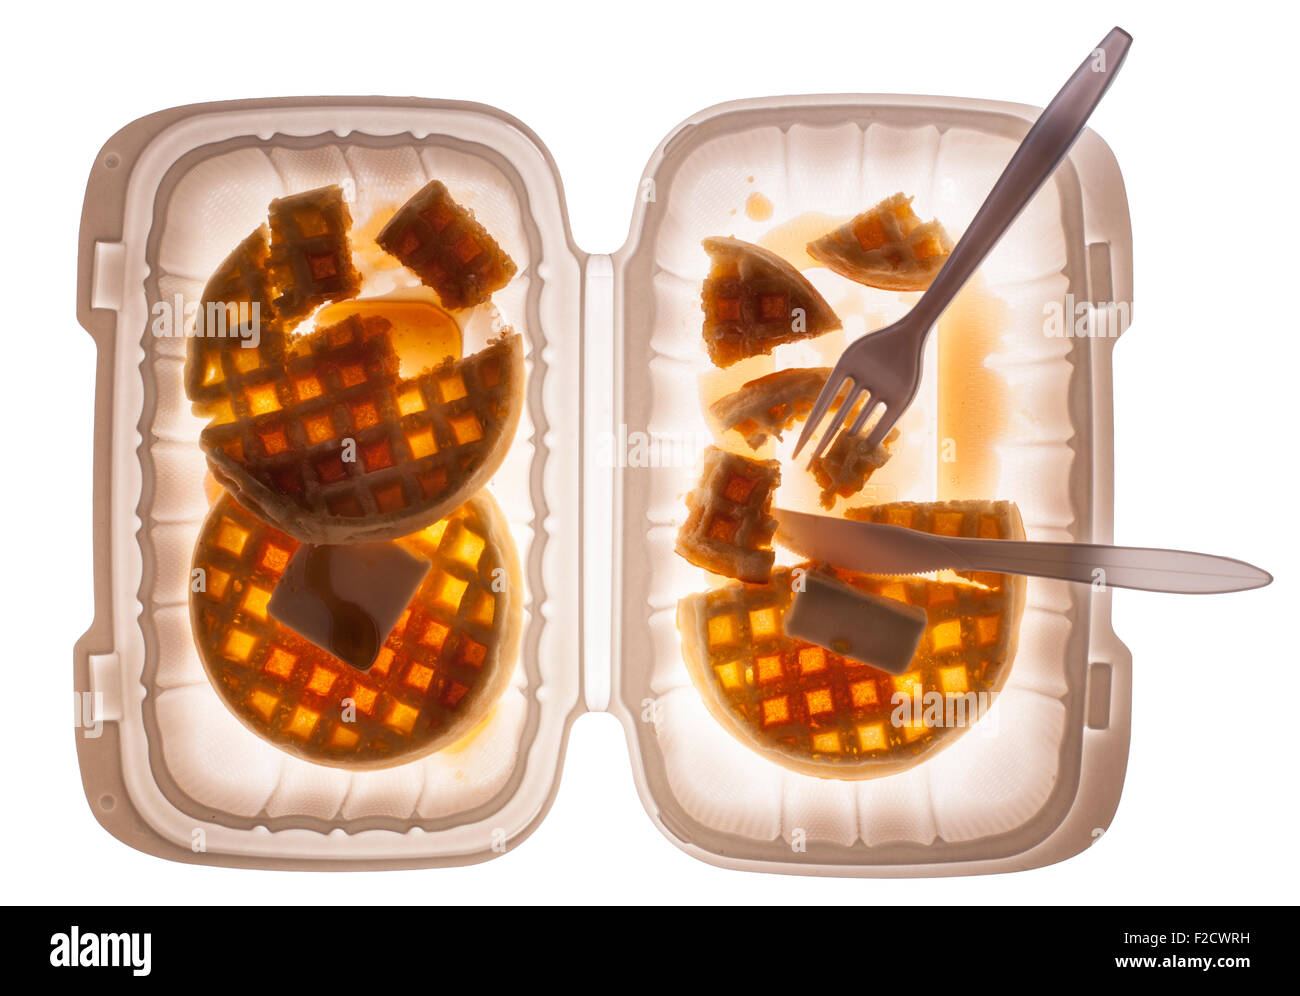 Looking straight down on waffles with butter and syrup in a plastic container with a fork and knife, half-eaten - Stock Image